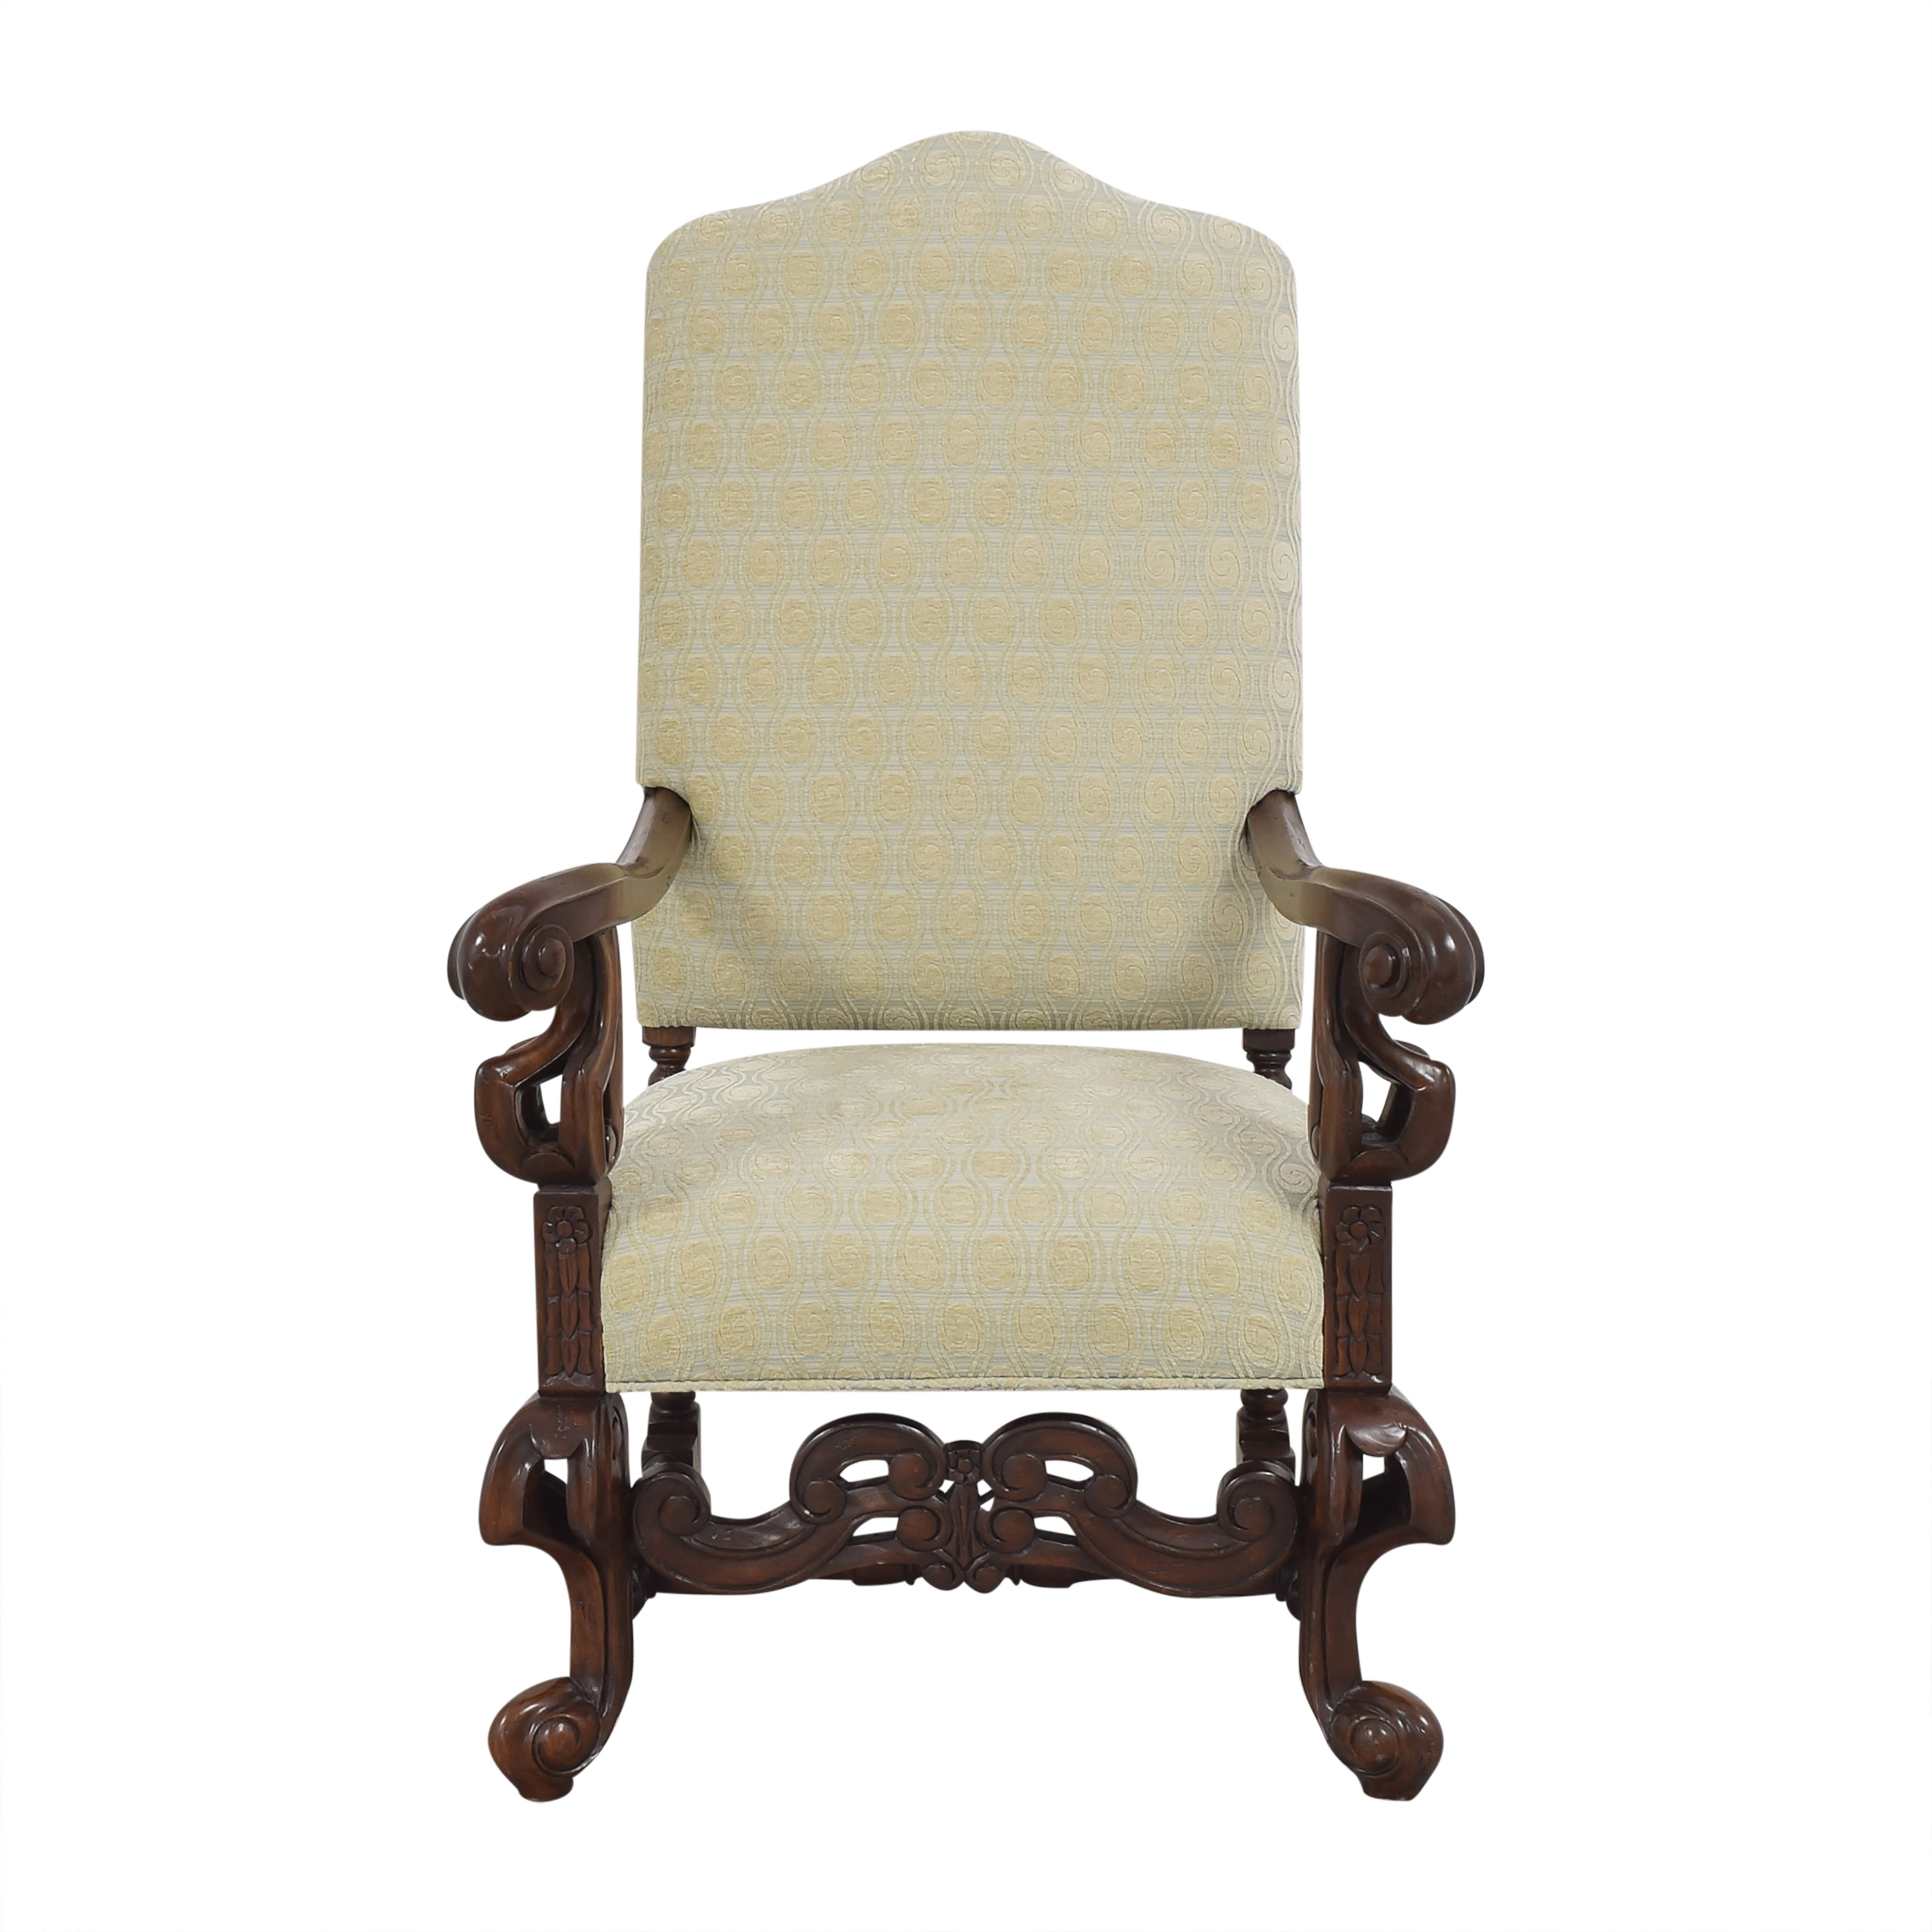 Louis XIV-Style Accent Chair / Chairs